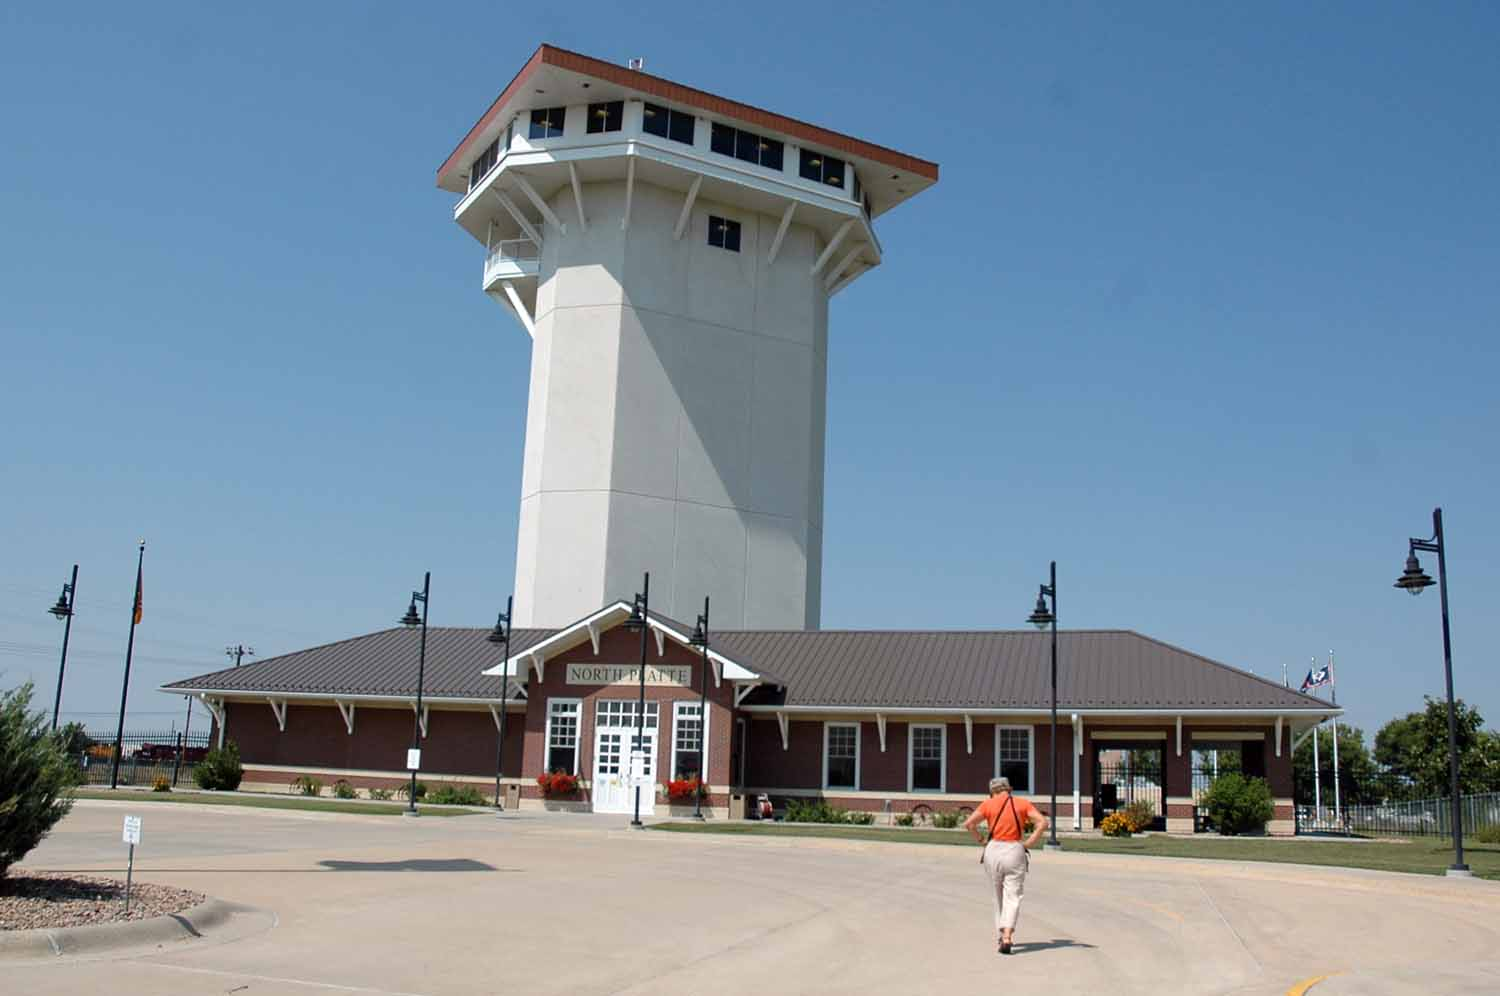 Golden Spike Tower in North Platte Nebraska